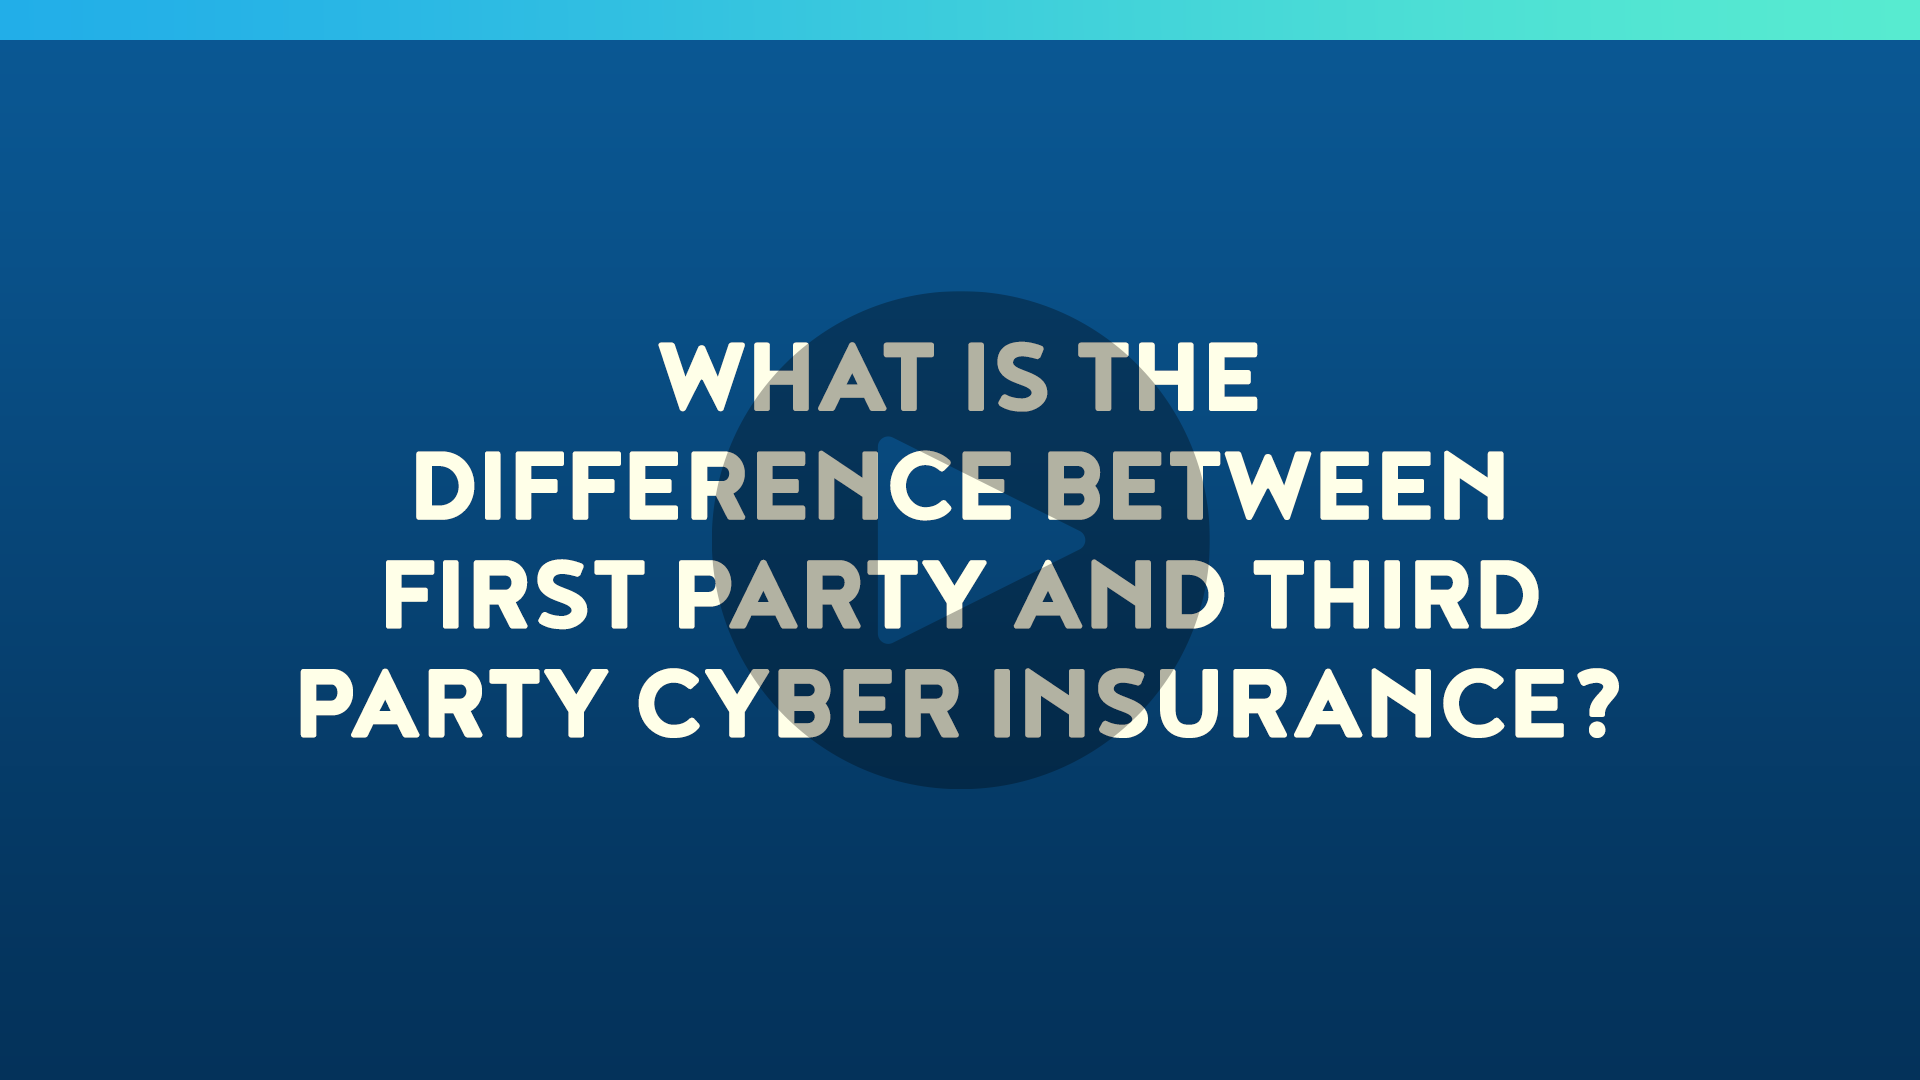 What is the Difference Between First Party and Third Party Cyber Insurance?